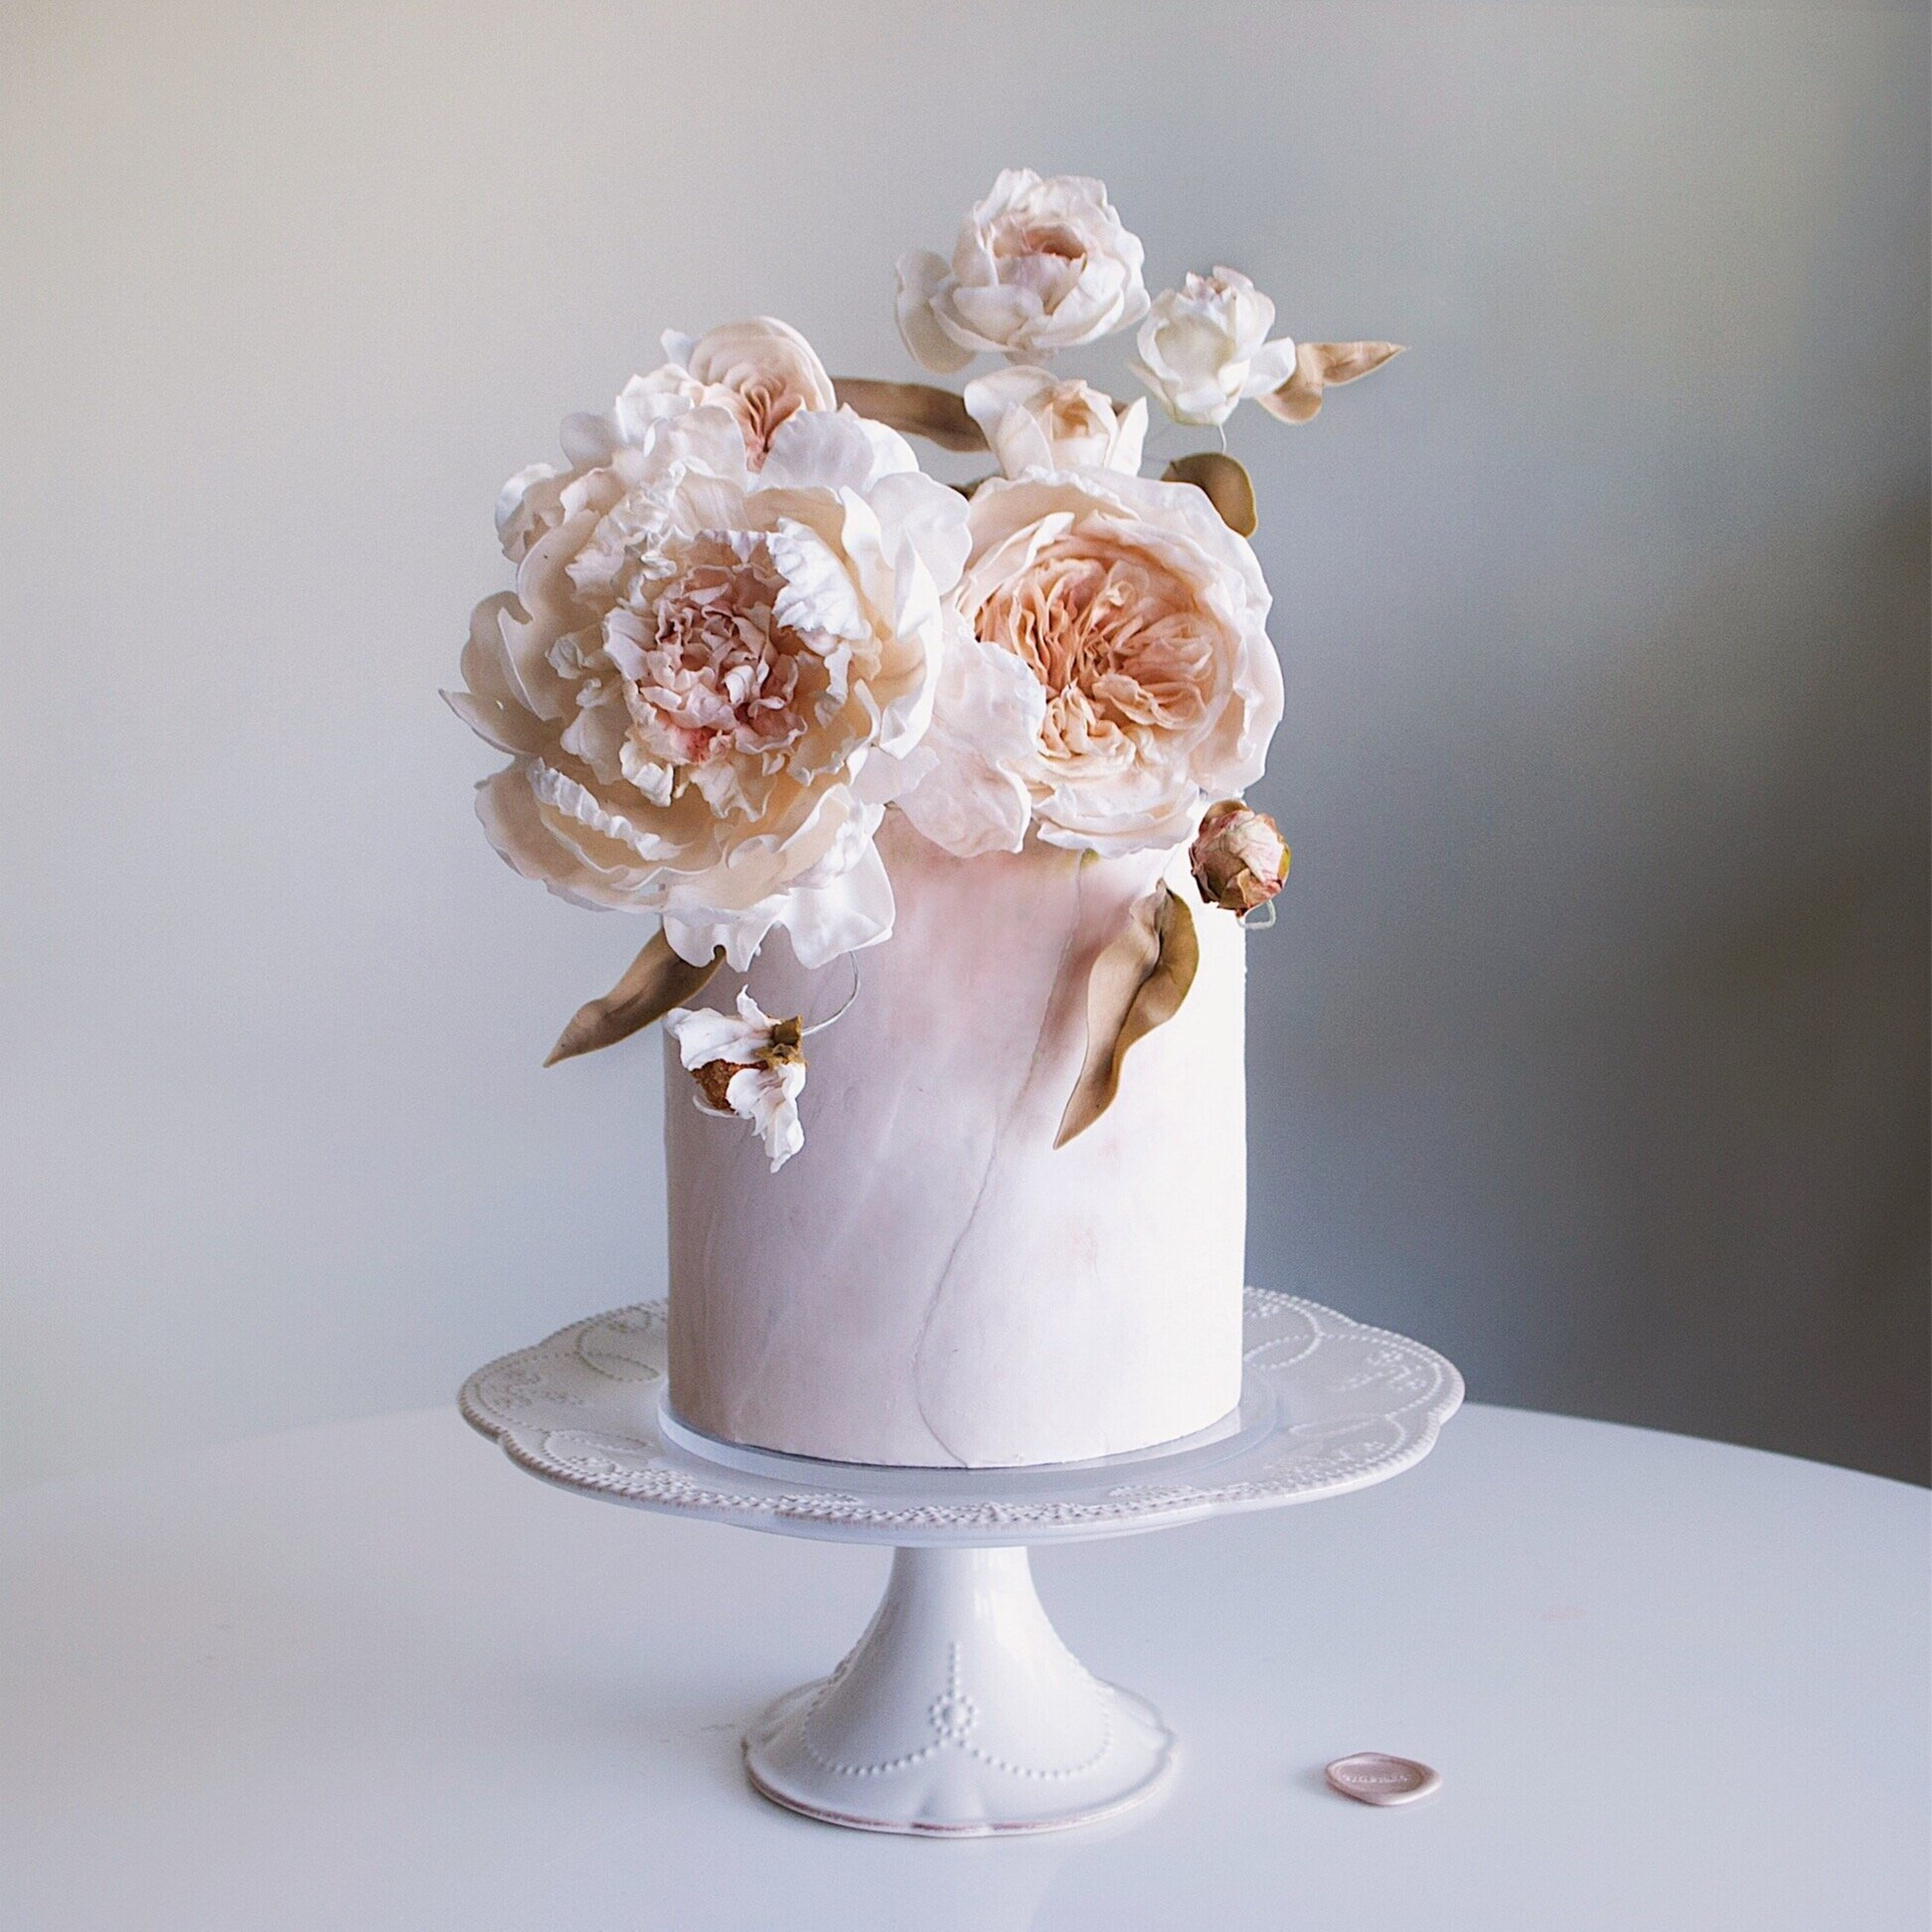 Classic Wedding Sugar Flowers